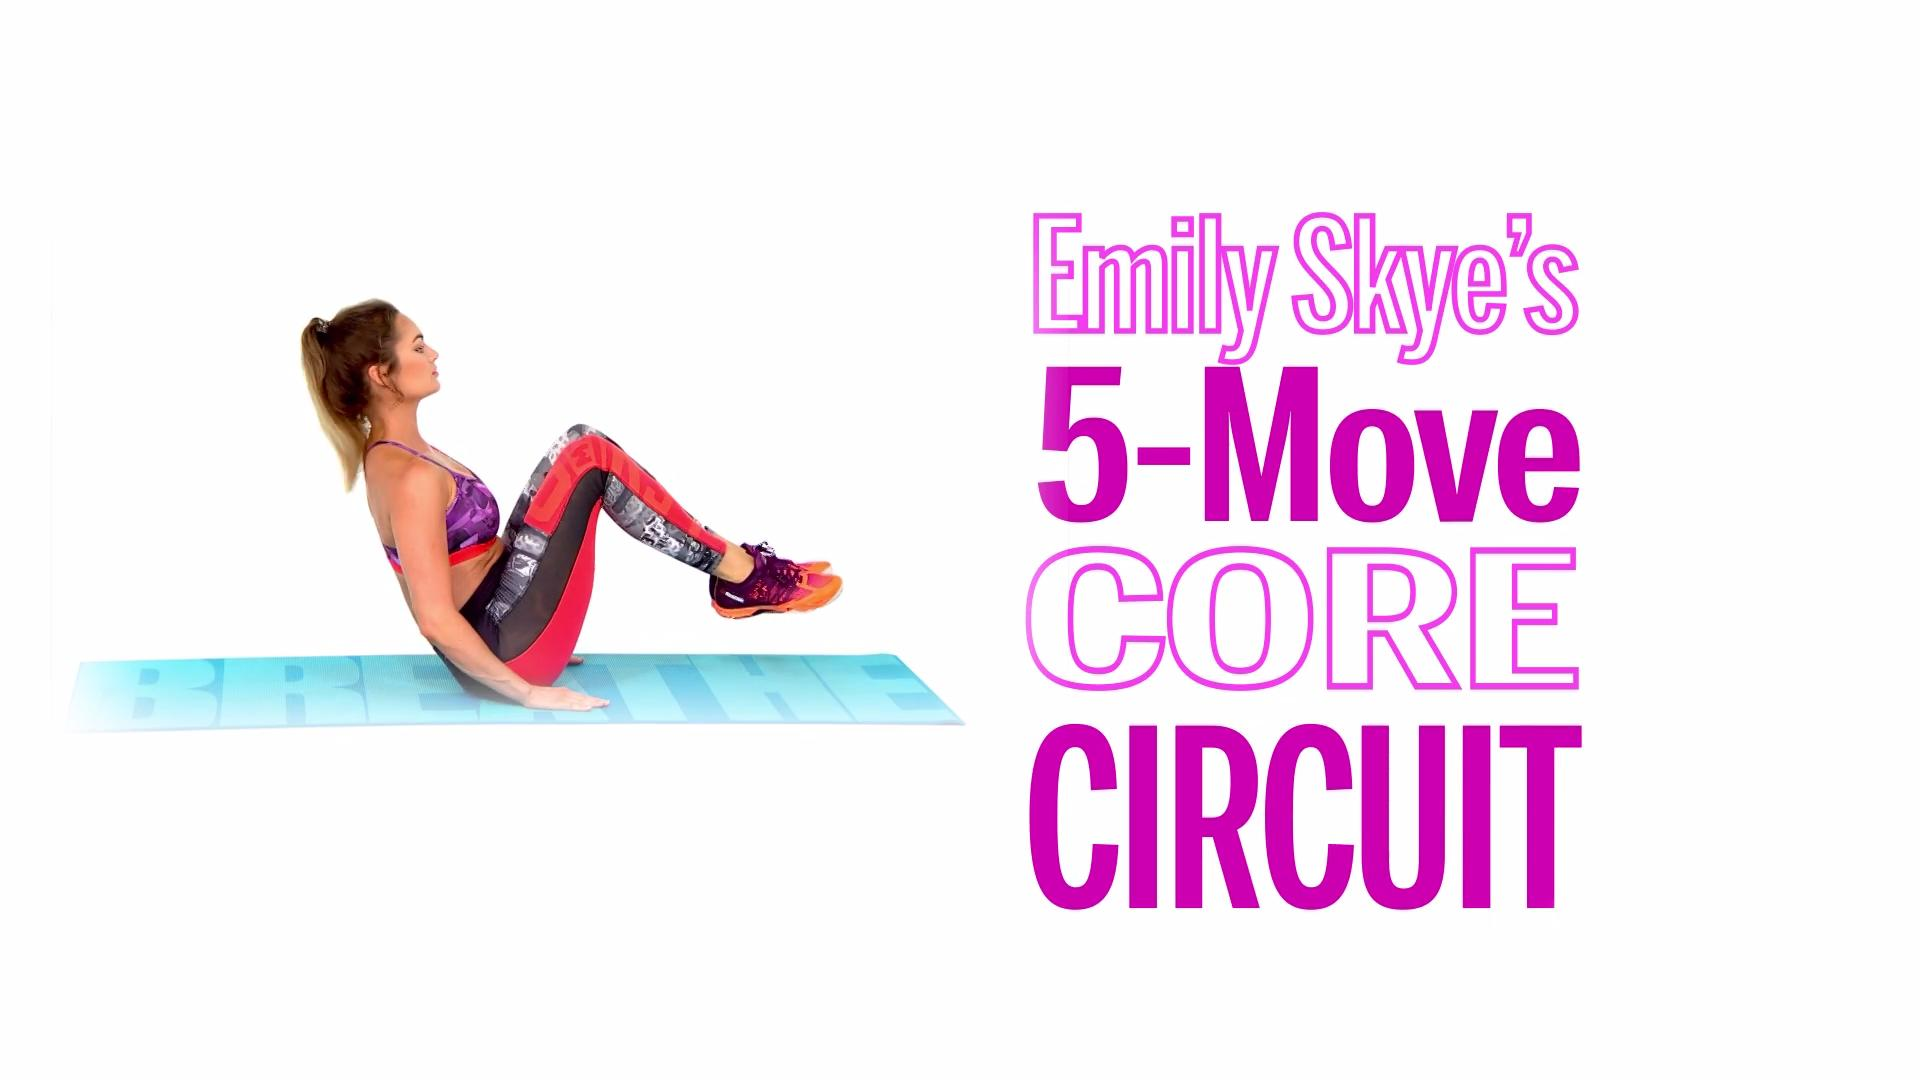 Emily Skye's 5-Move Core Circuit